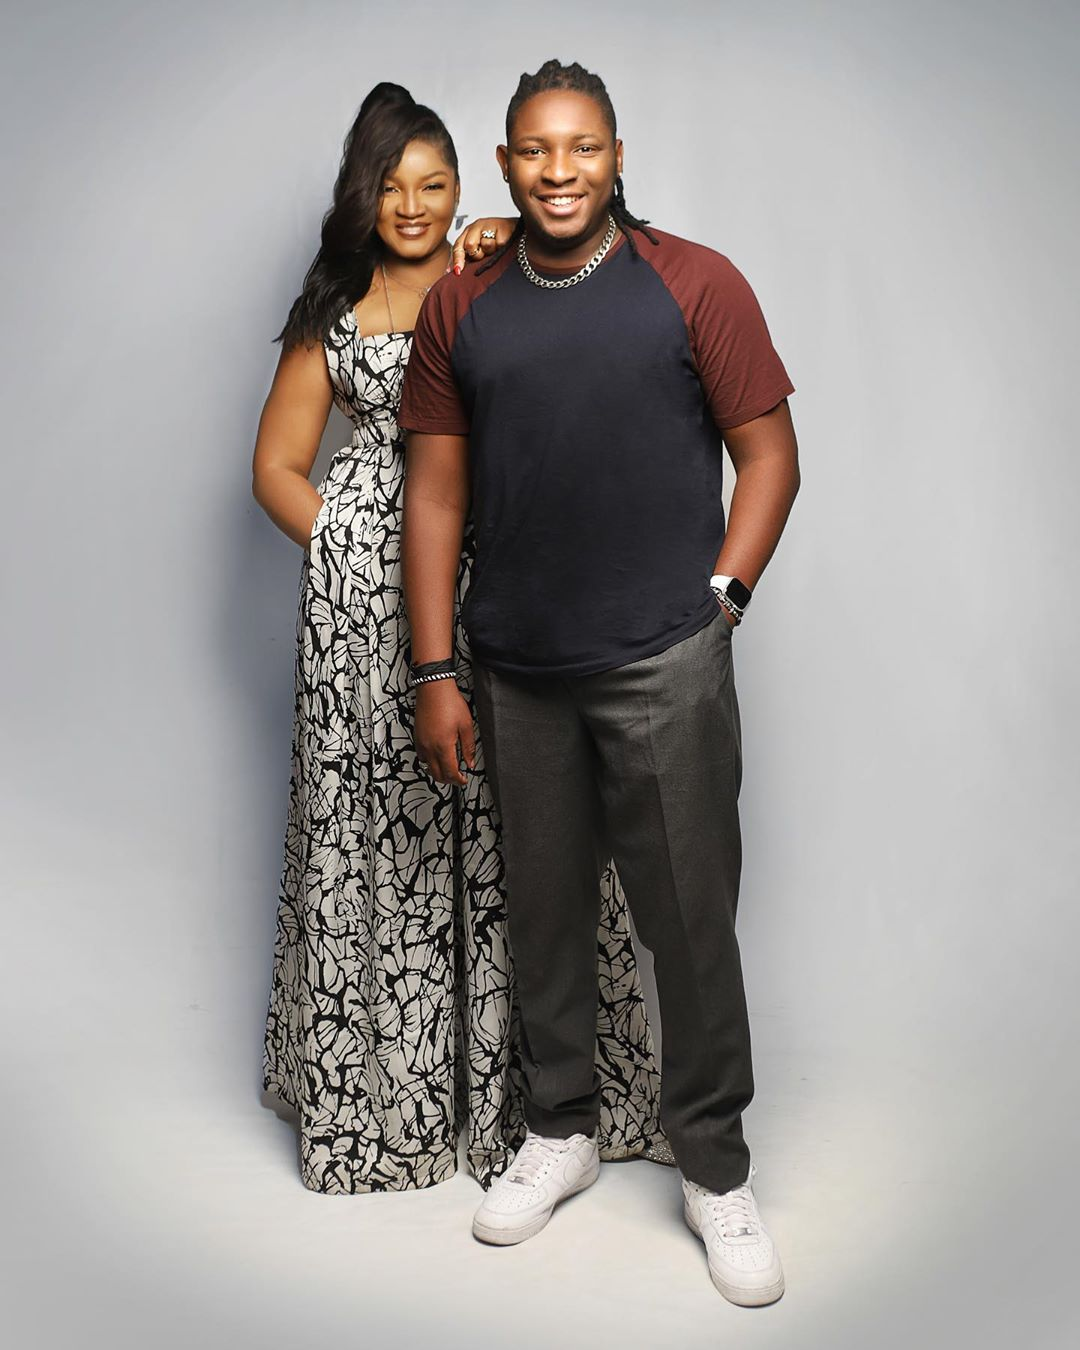 """omotola n son """"Cute couple"""" – Fans reacts as an actress, Omotola Jalade-Ekeinde shares lovely photos of herself and her son"""